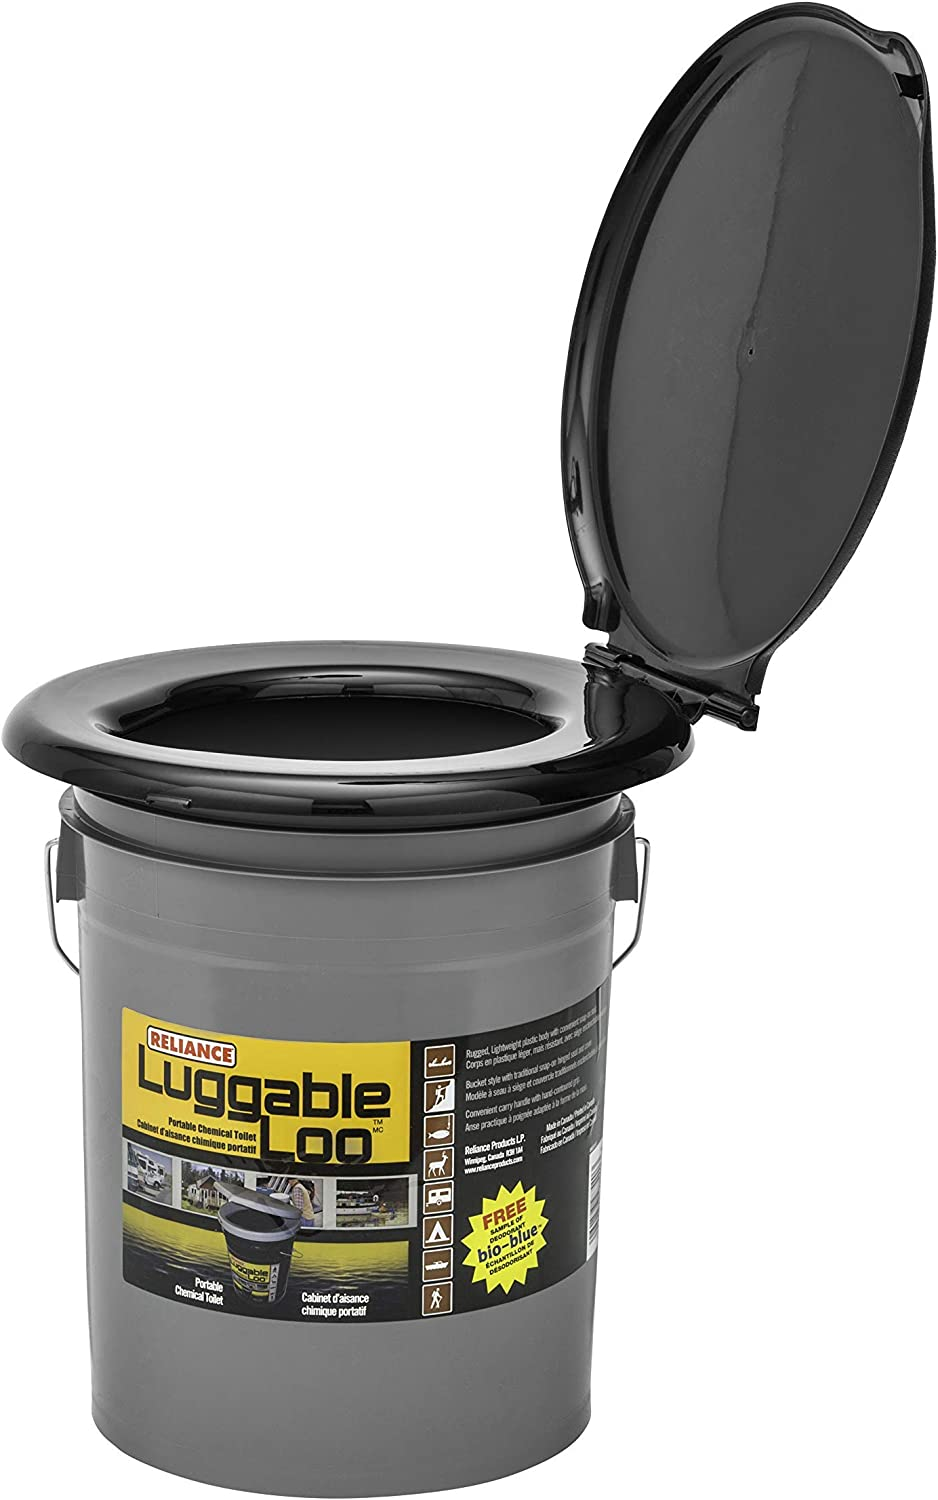 Reliance Products Luggable Loo Portable 5 Gallon Bucket